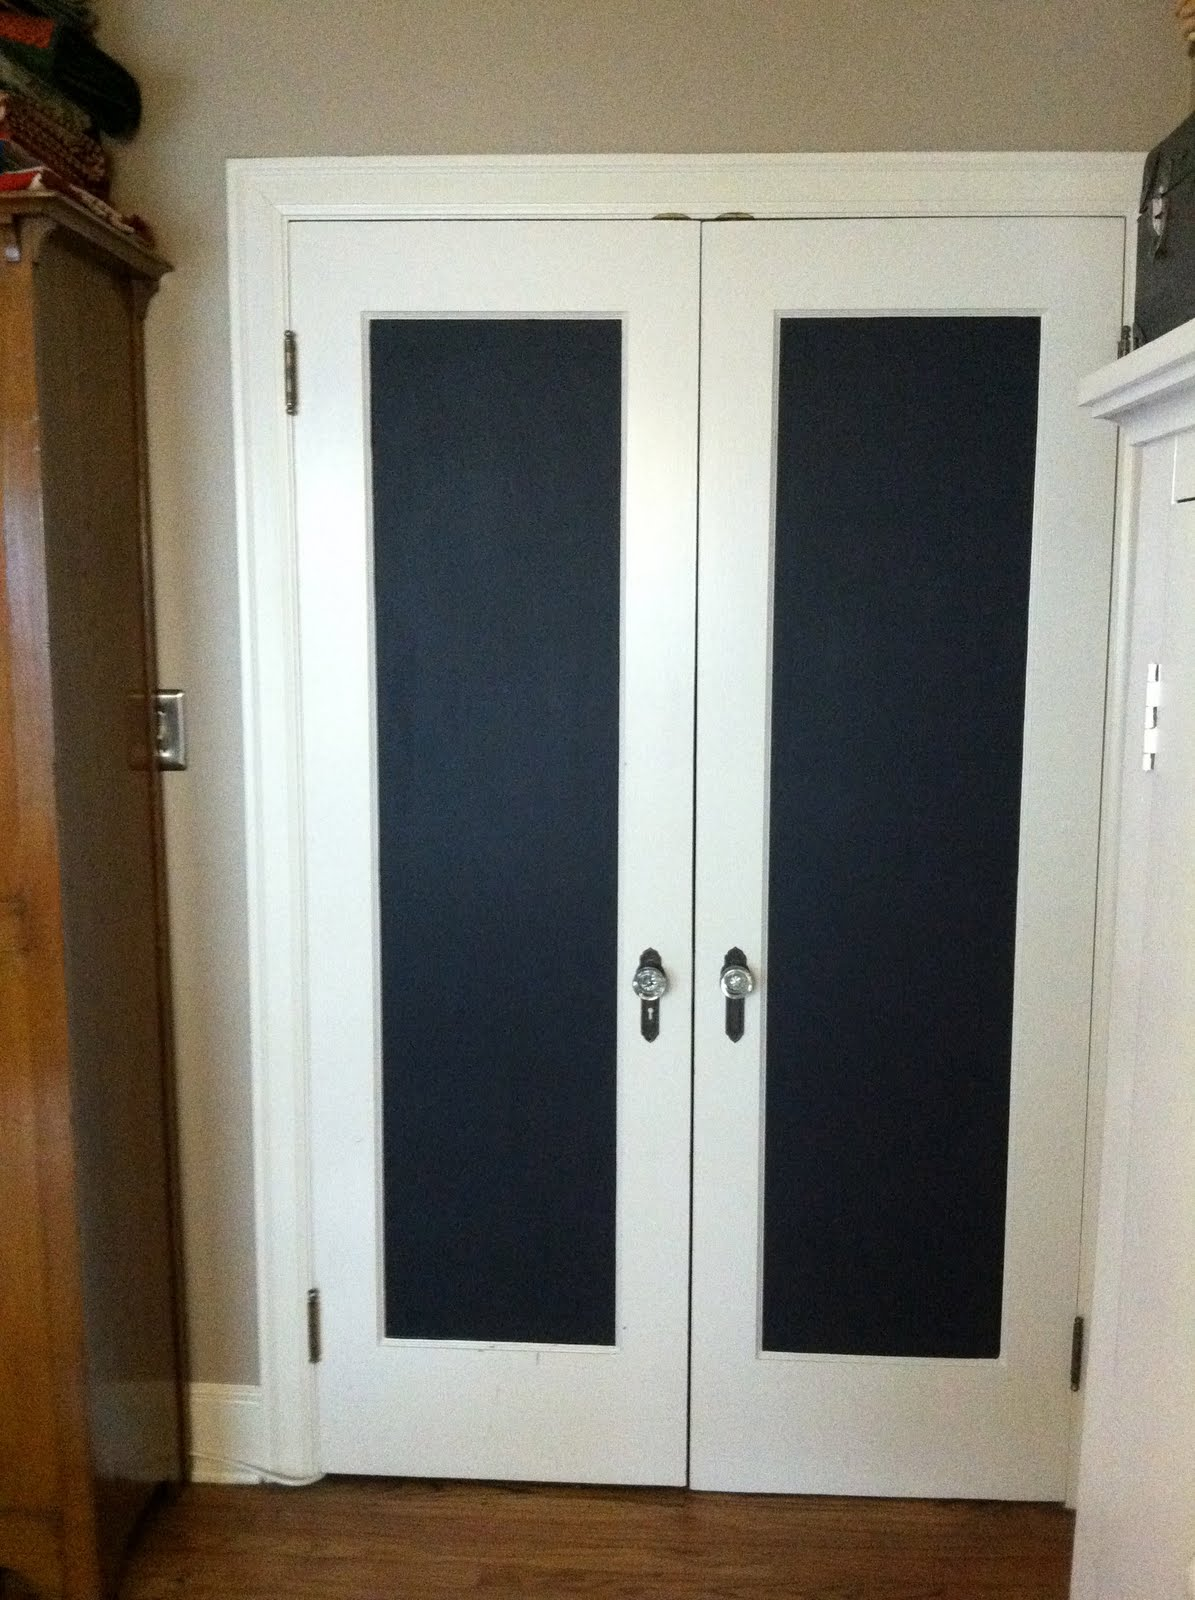 kathy schmitz chalkboard doodle doors walk in closets designs amp ideas by california closets